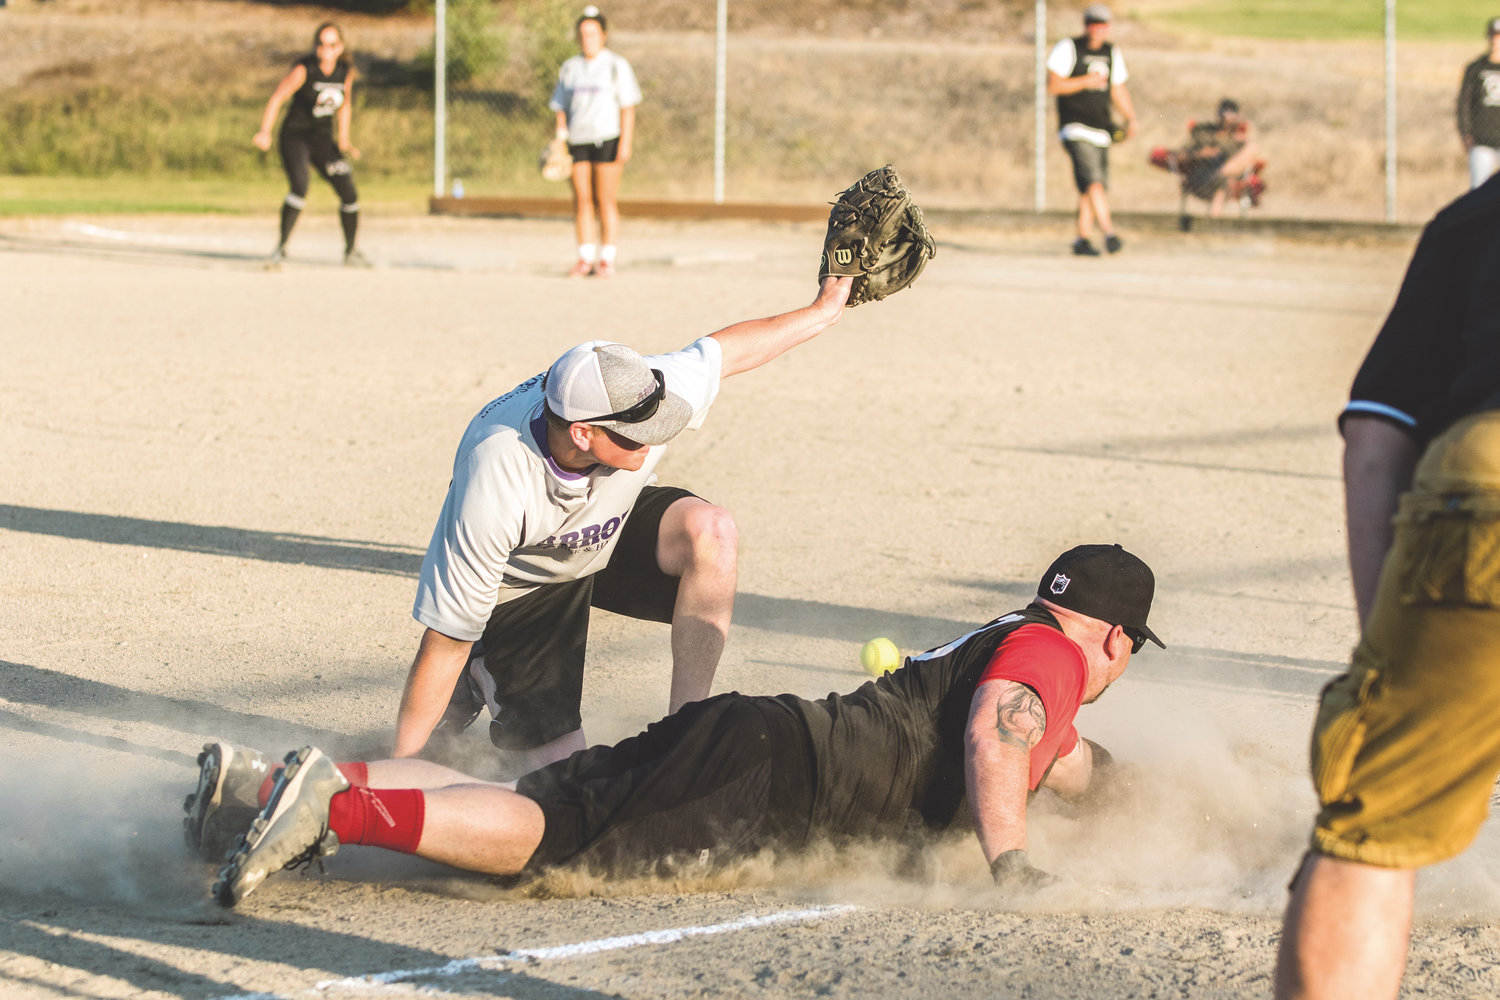 Nic Dahl from Team HC Spinners is safe on third base.